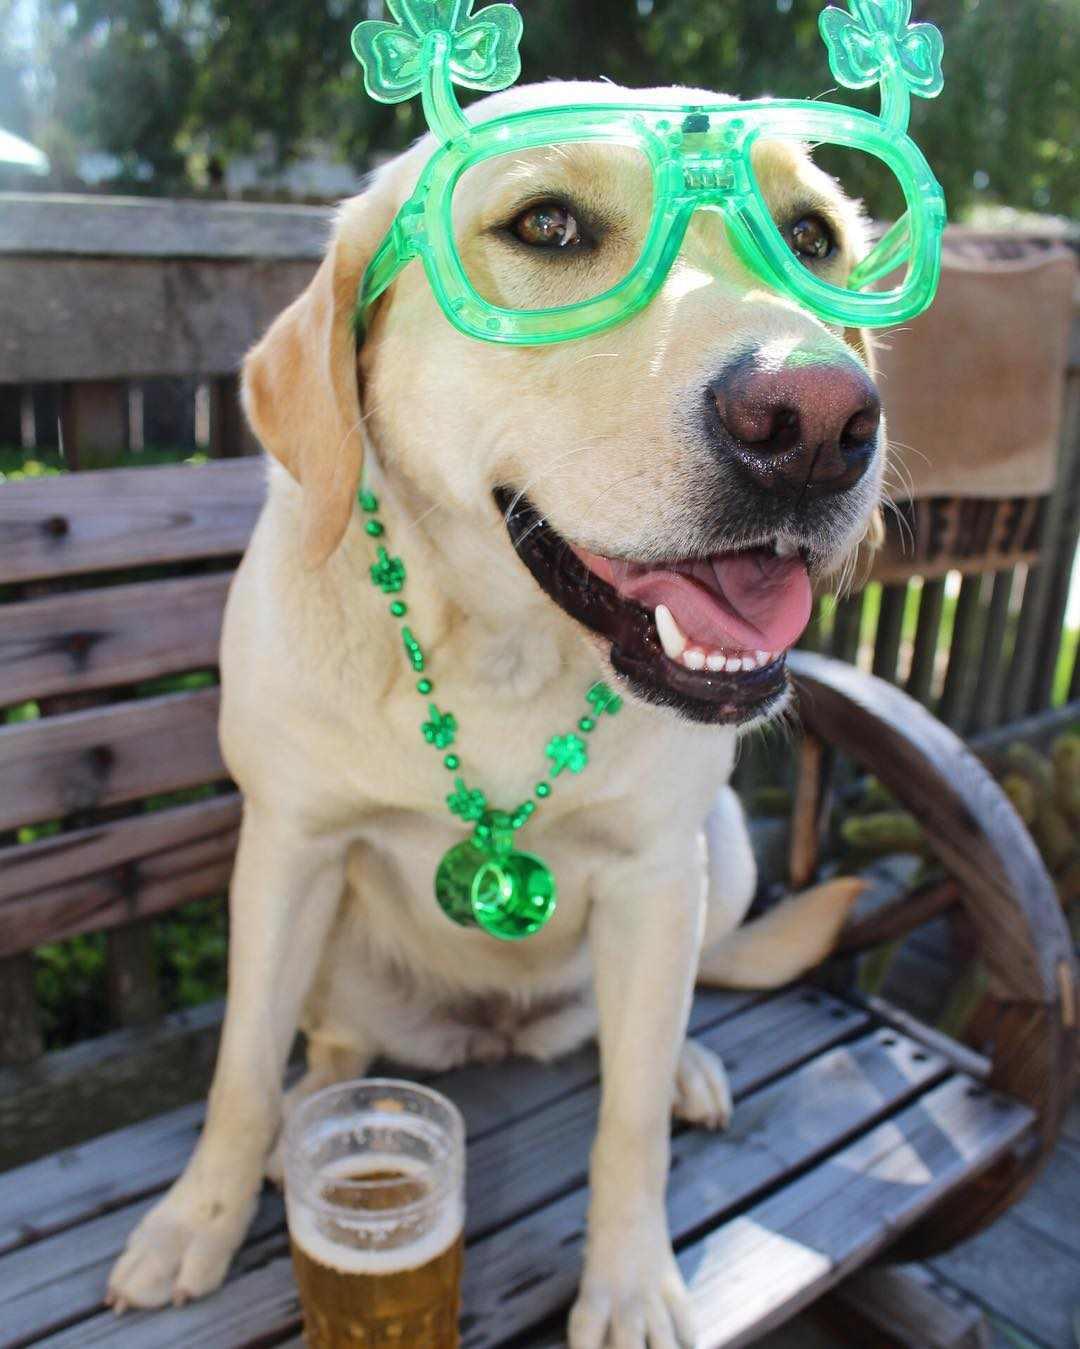 Nice idea for dog at St. Pattys day.